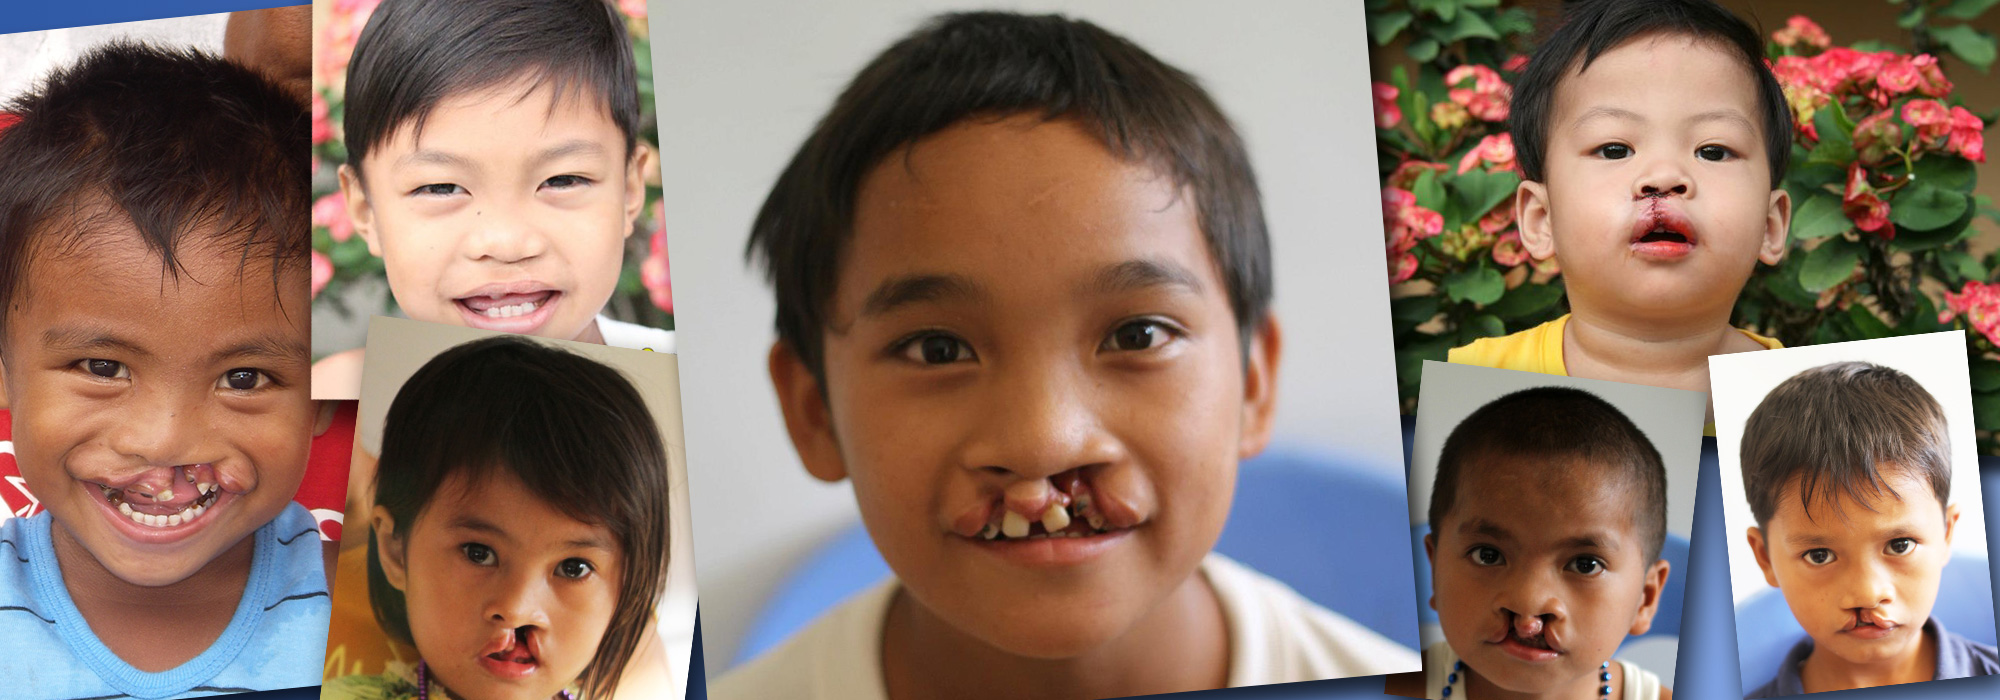 Children with facial deformities in the Philippines overwhelmingly live in rural areas with little access to health care